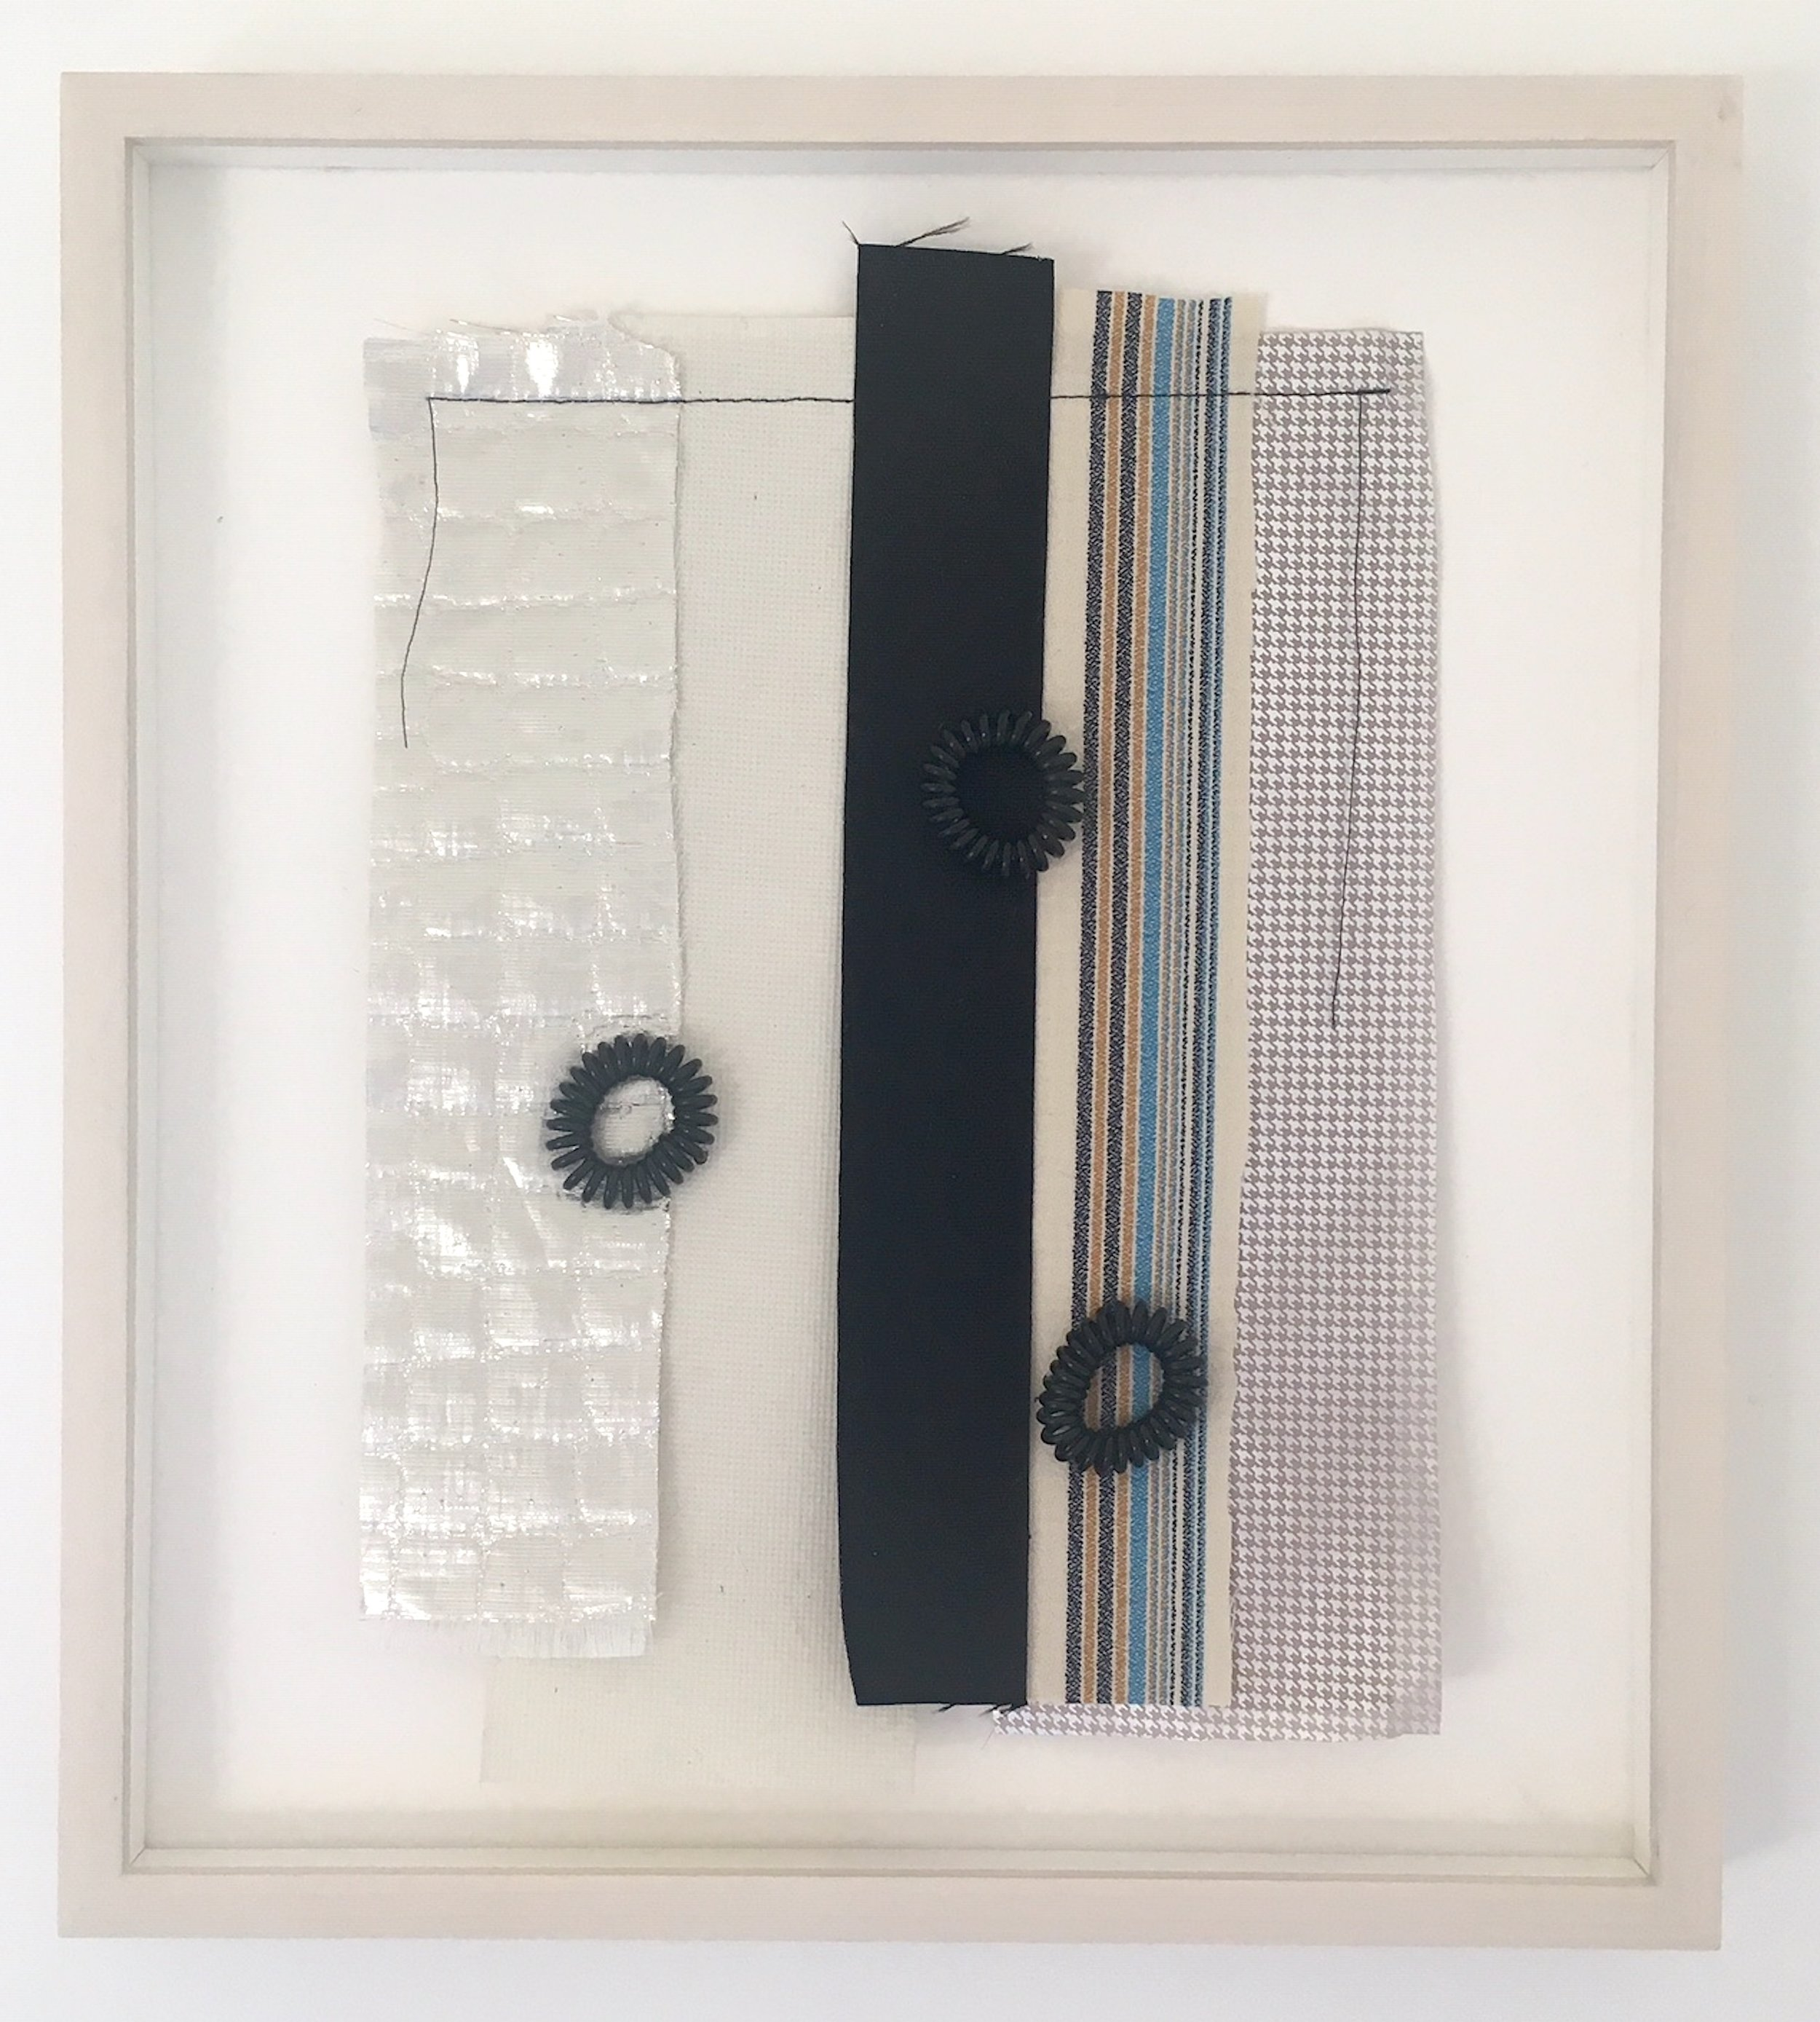 Don't swim out too far III , fabric collage, 2019